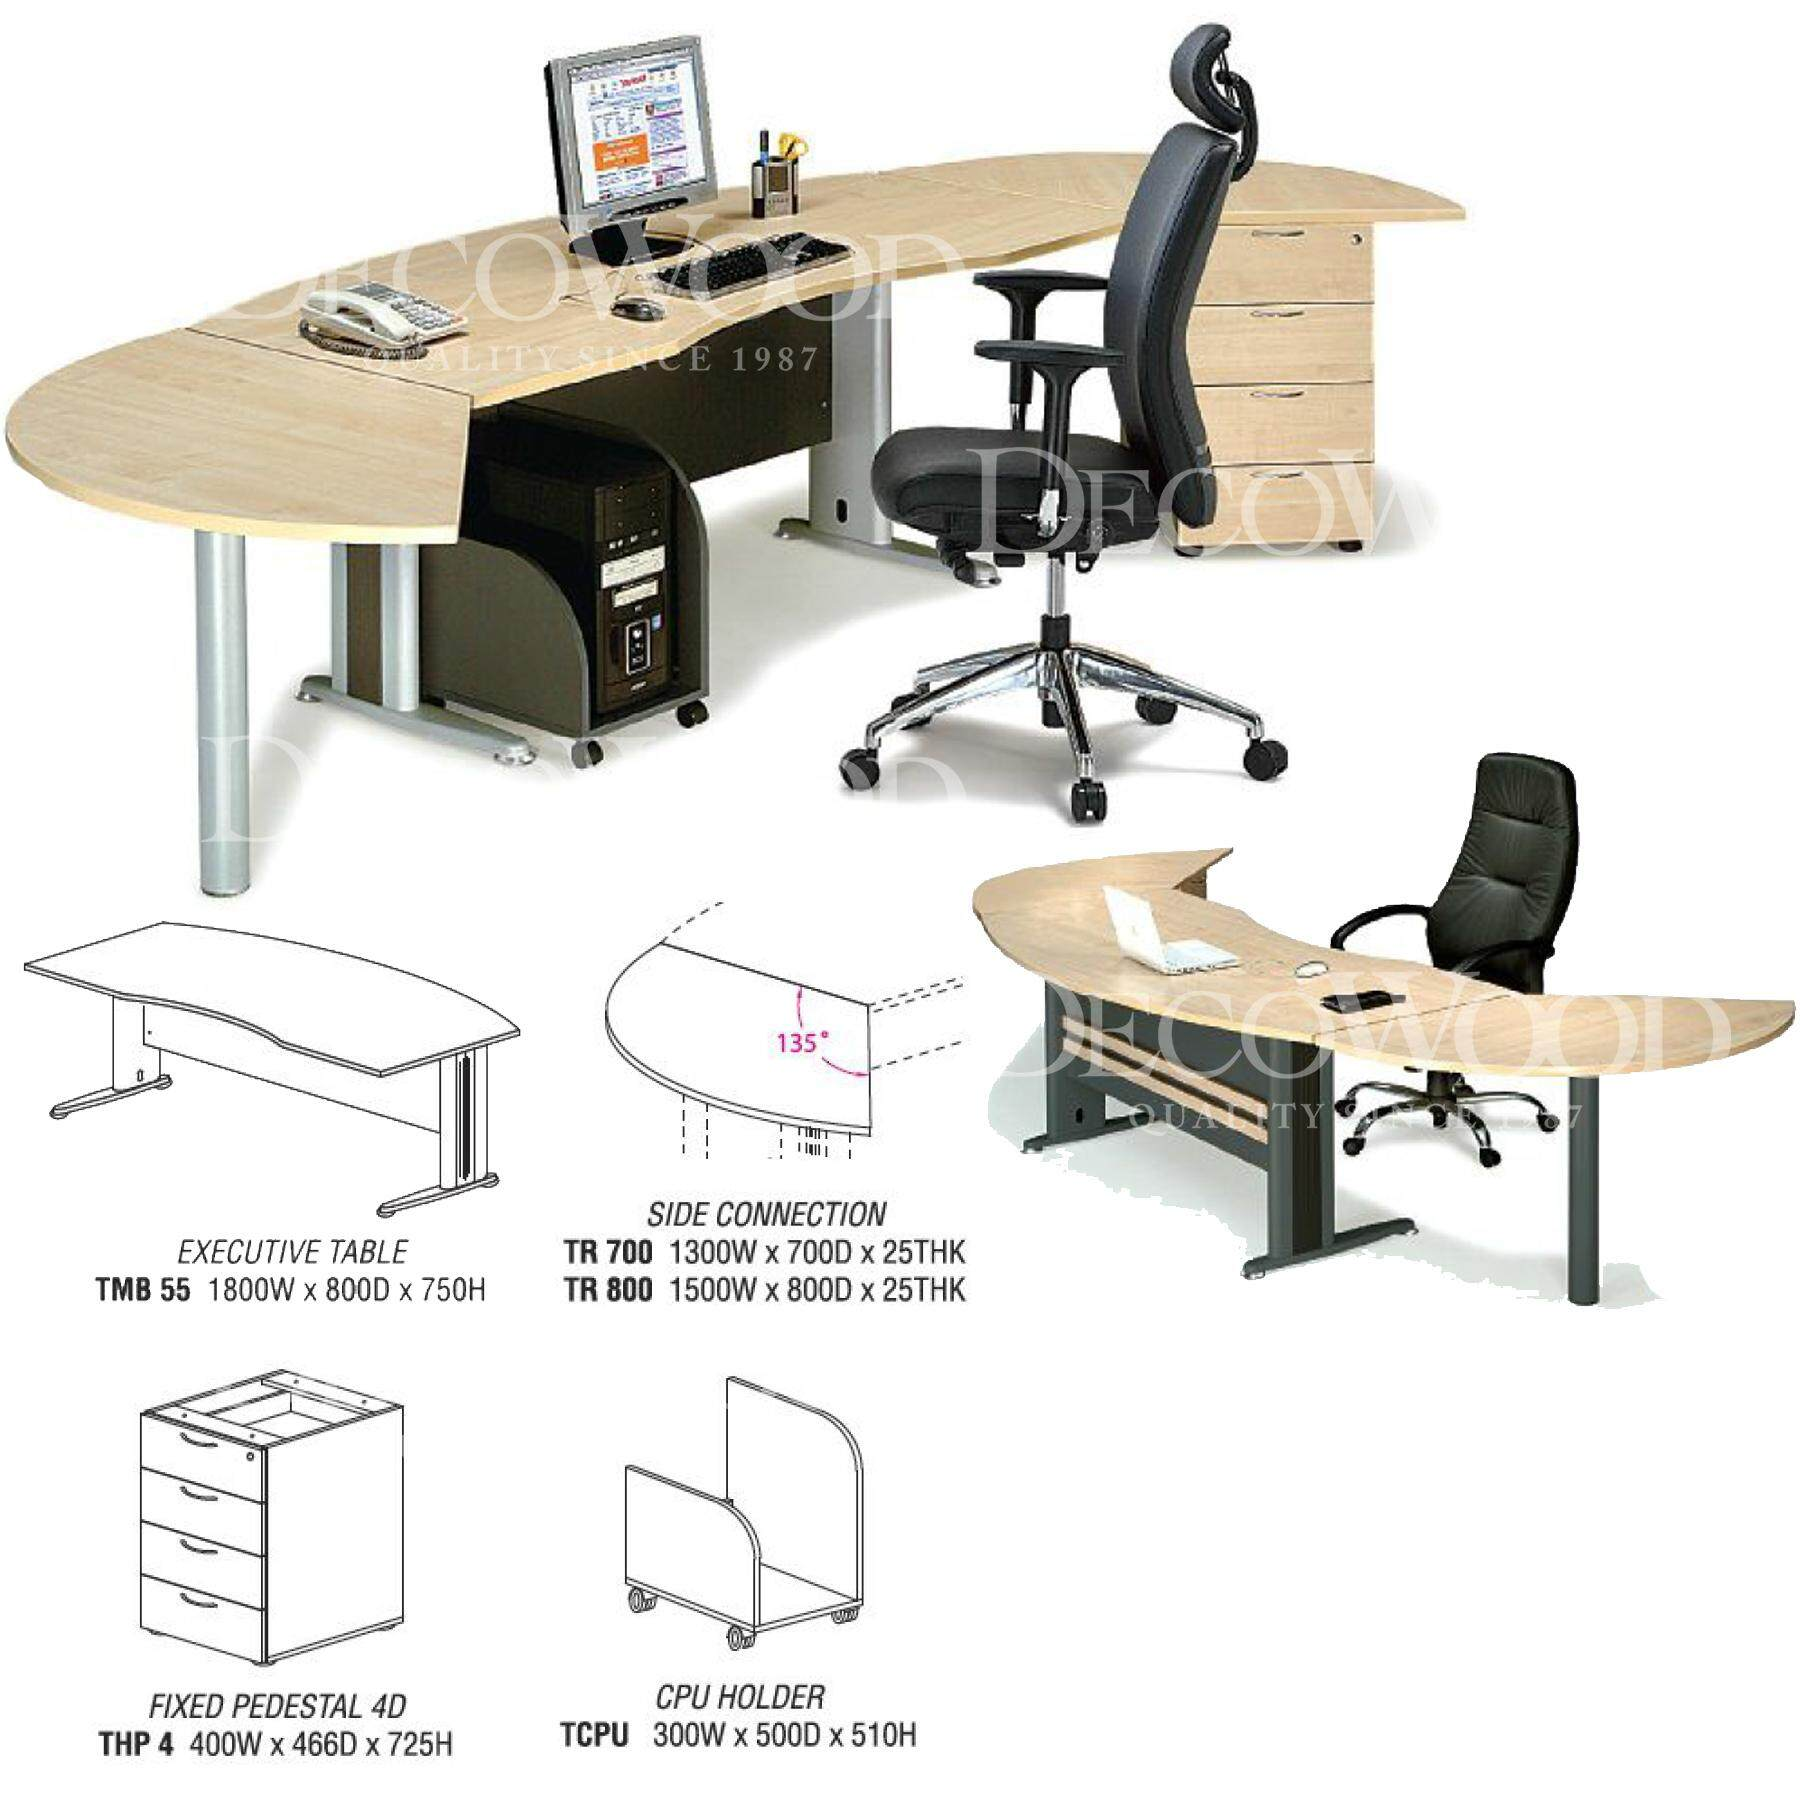 Executive Table Set / Superior Compact Table / Executive Table / Standard Table / Office Table / Office Meeting / Table Writing / Table Director / Table Dining / Table Discussion / Office Desk